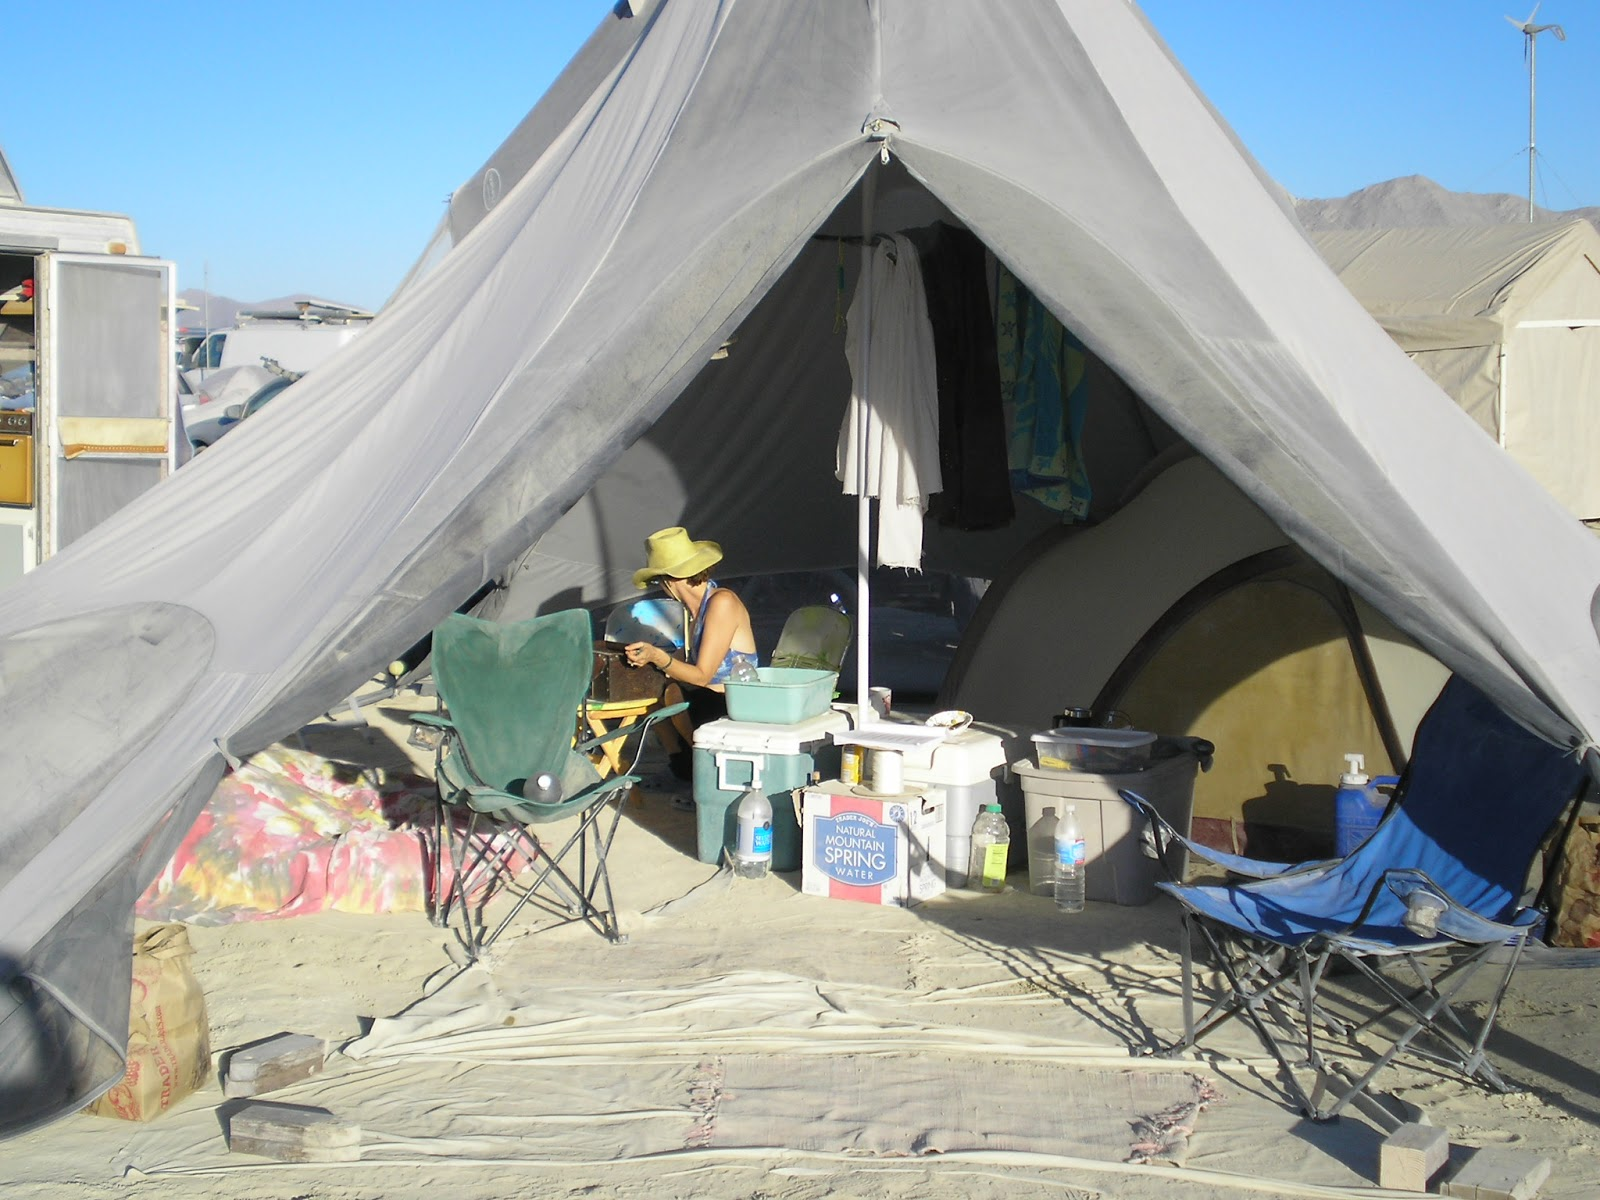 North Pole Shade Tent Burning Man Shade Revisited! & Four Bees: North Pole Shade Tent Burning Man Shade Revisited!